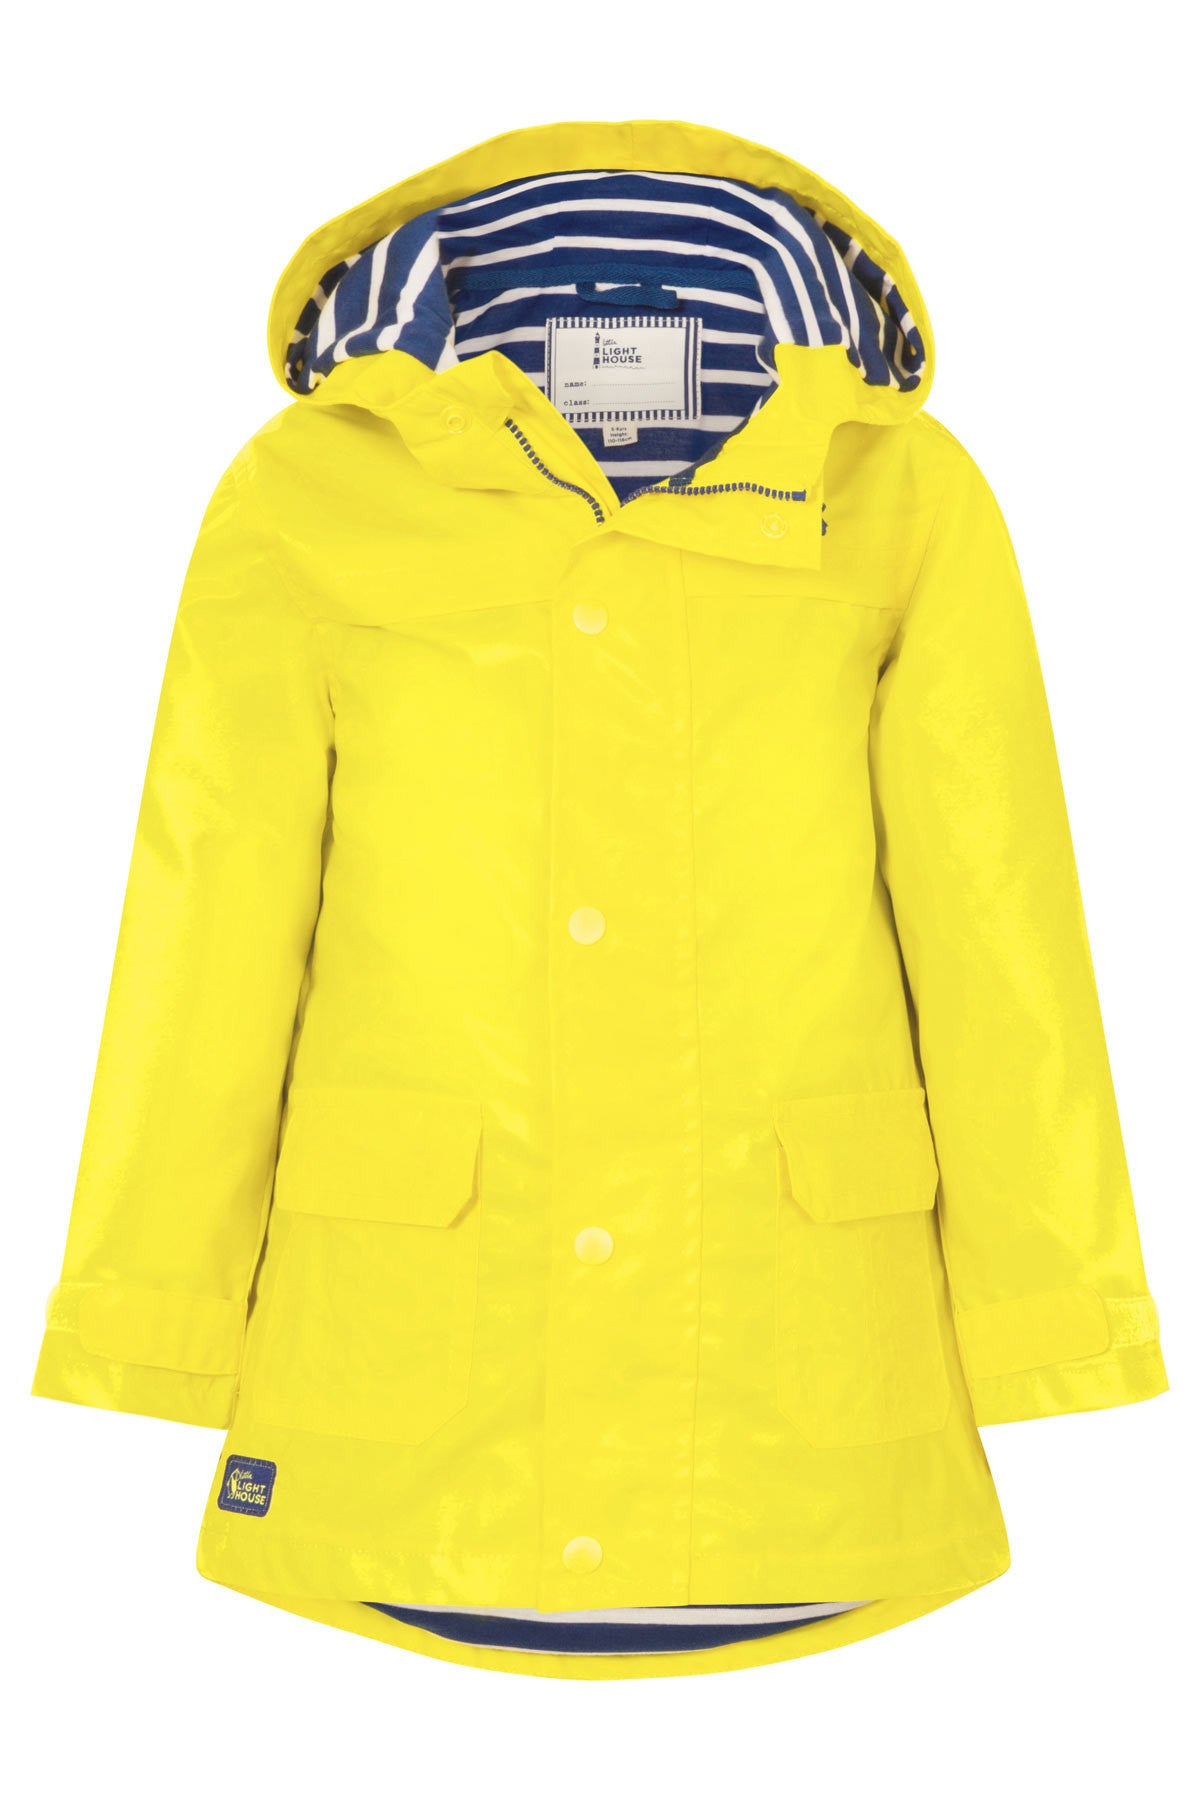 cd0e03515 Sailor Boys Rubber Rain Coat